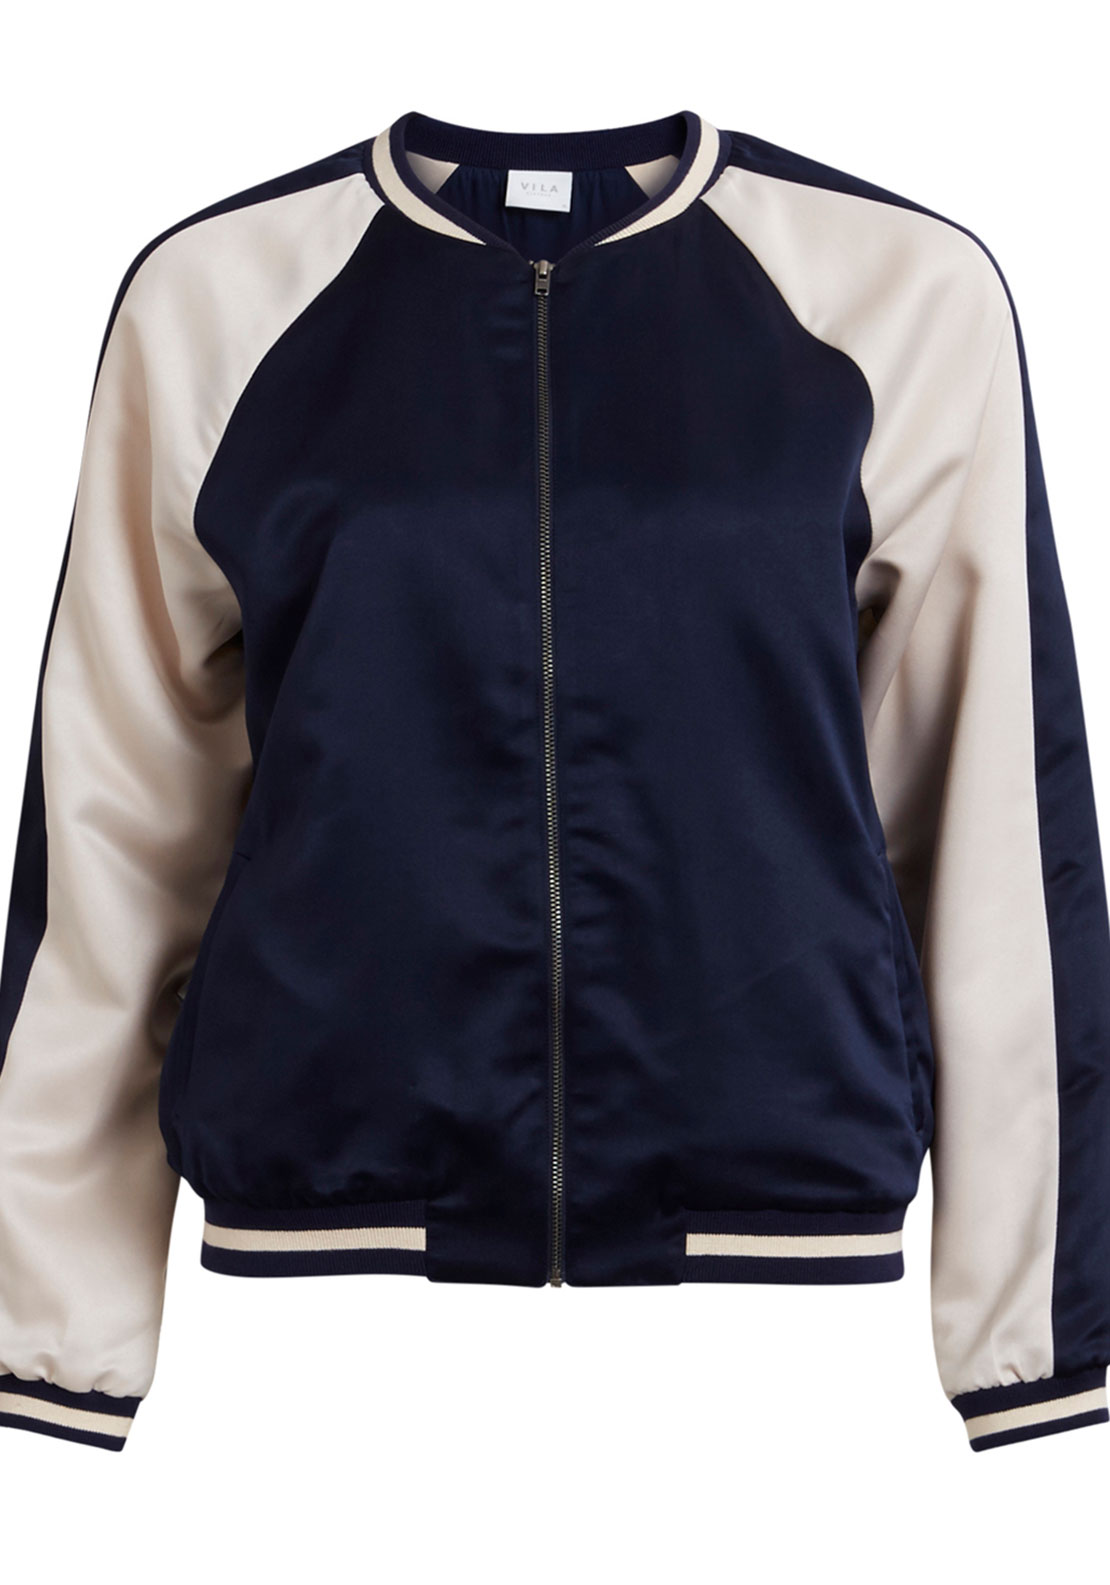 Vila Adobe Satin Bomber Jacket, Navy